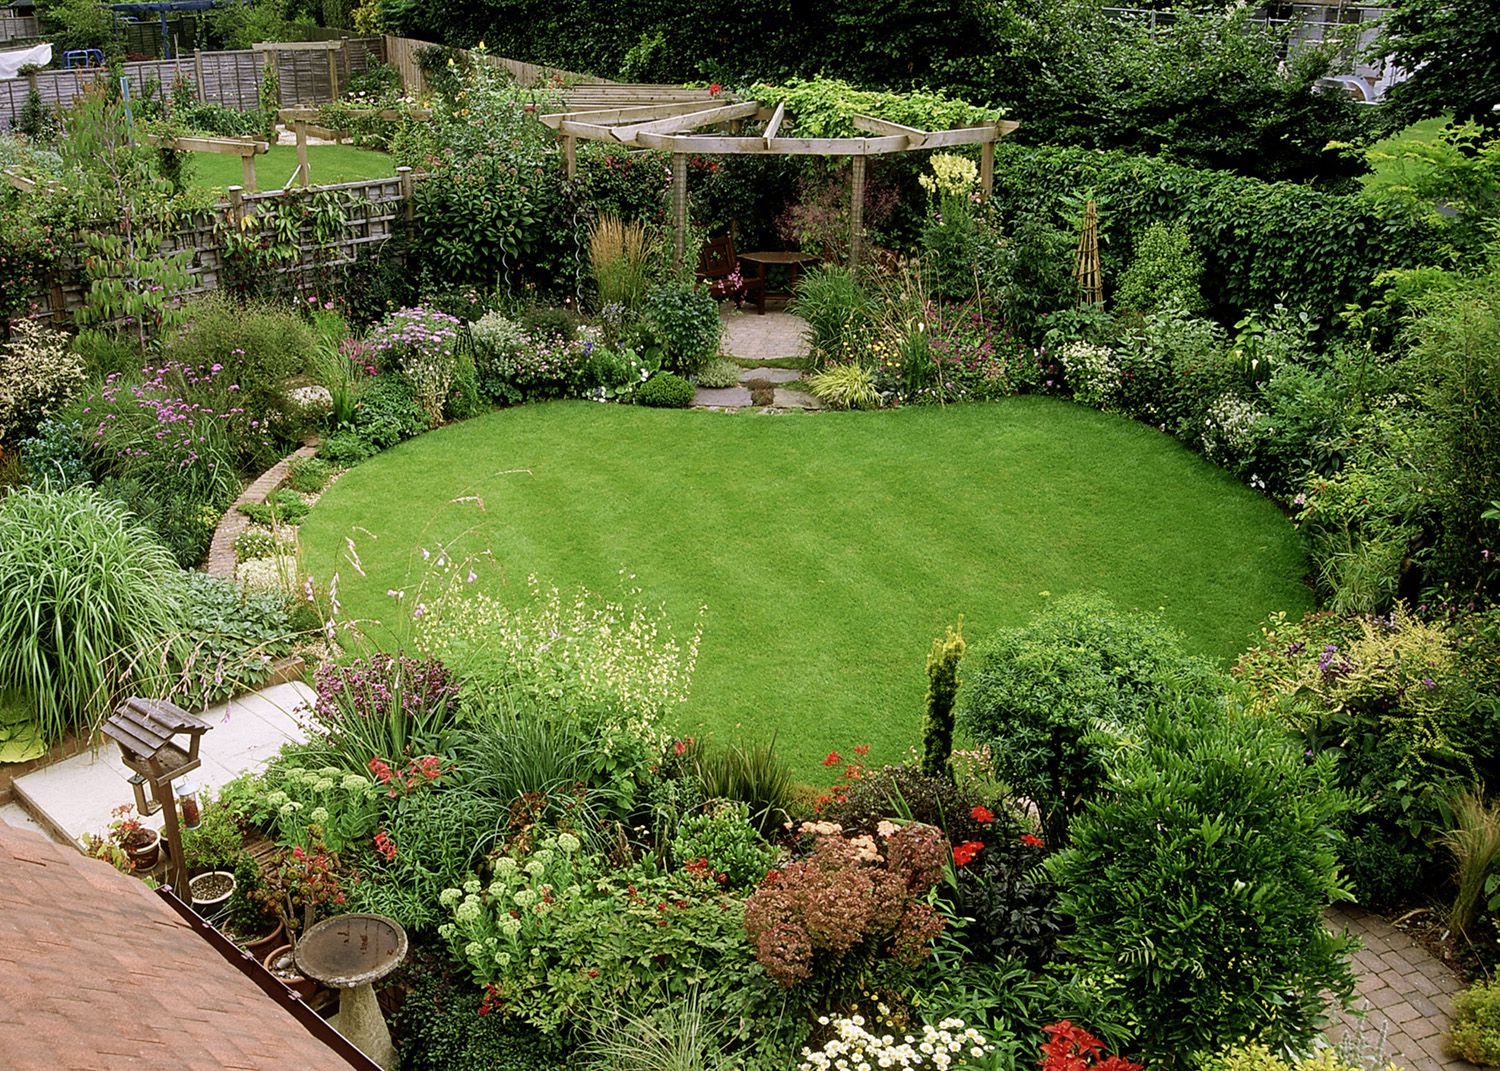 find the ideal size for lawn areas